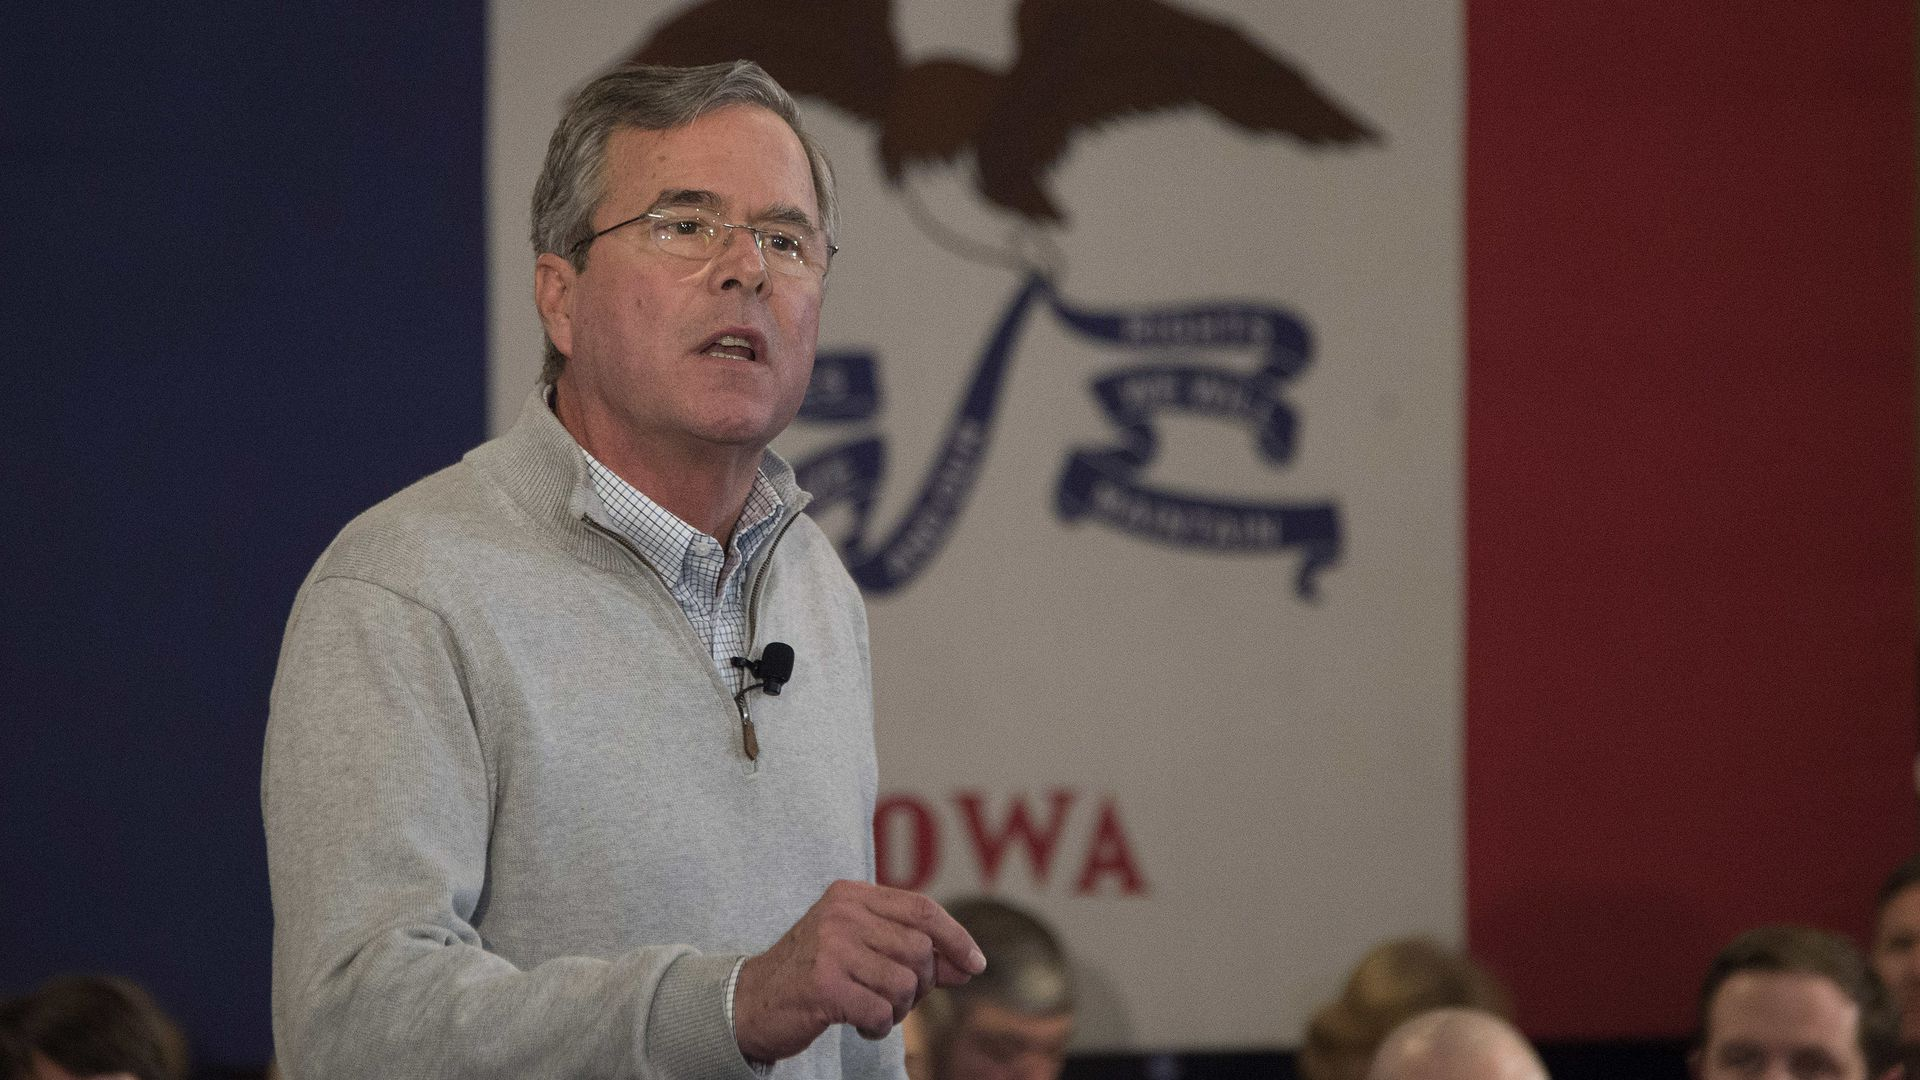 The FEC fined the Jeb Bush super PAC for soliciting a contribution from a foreign national.